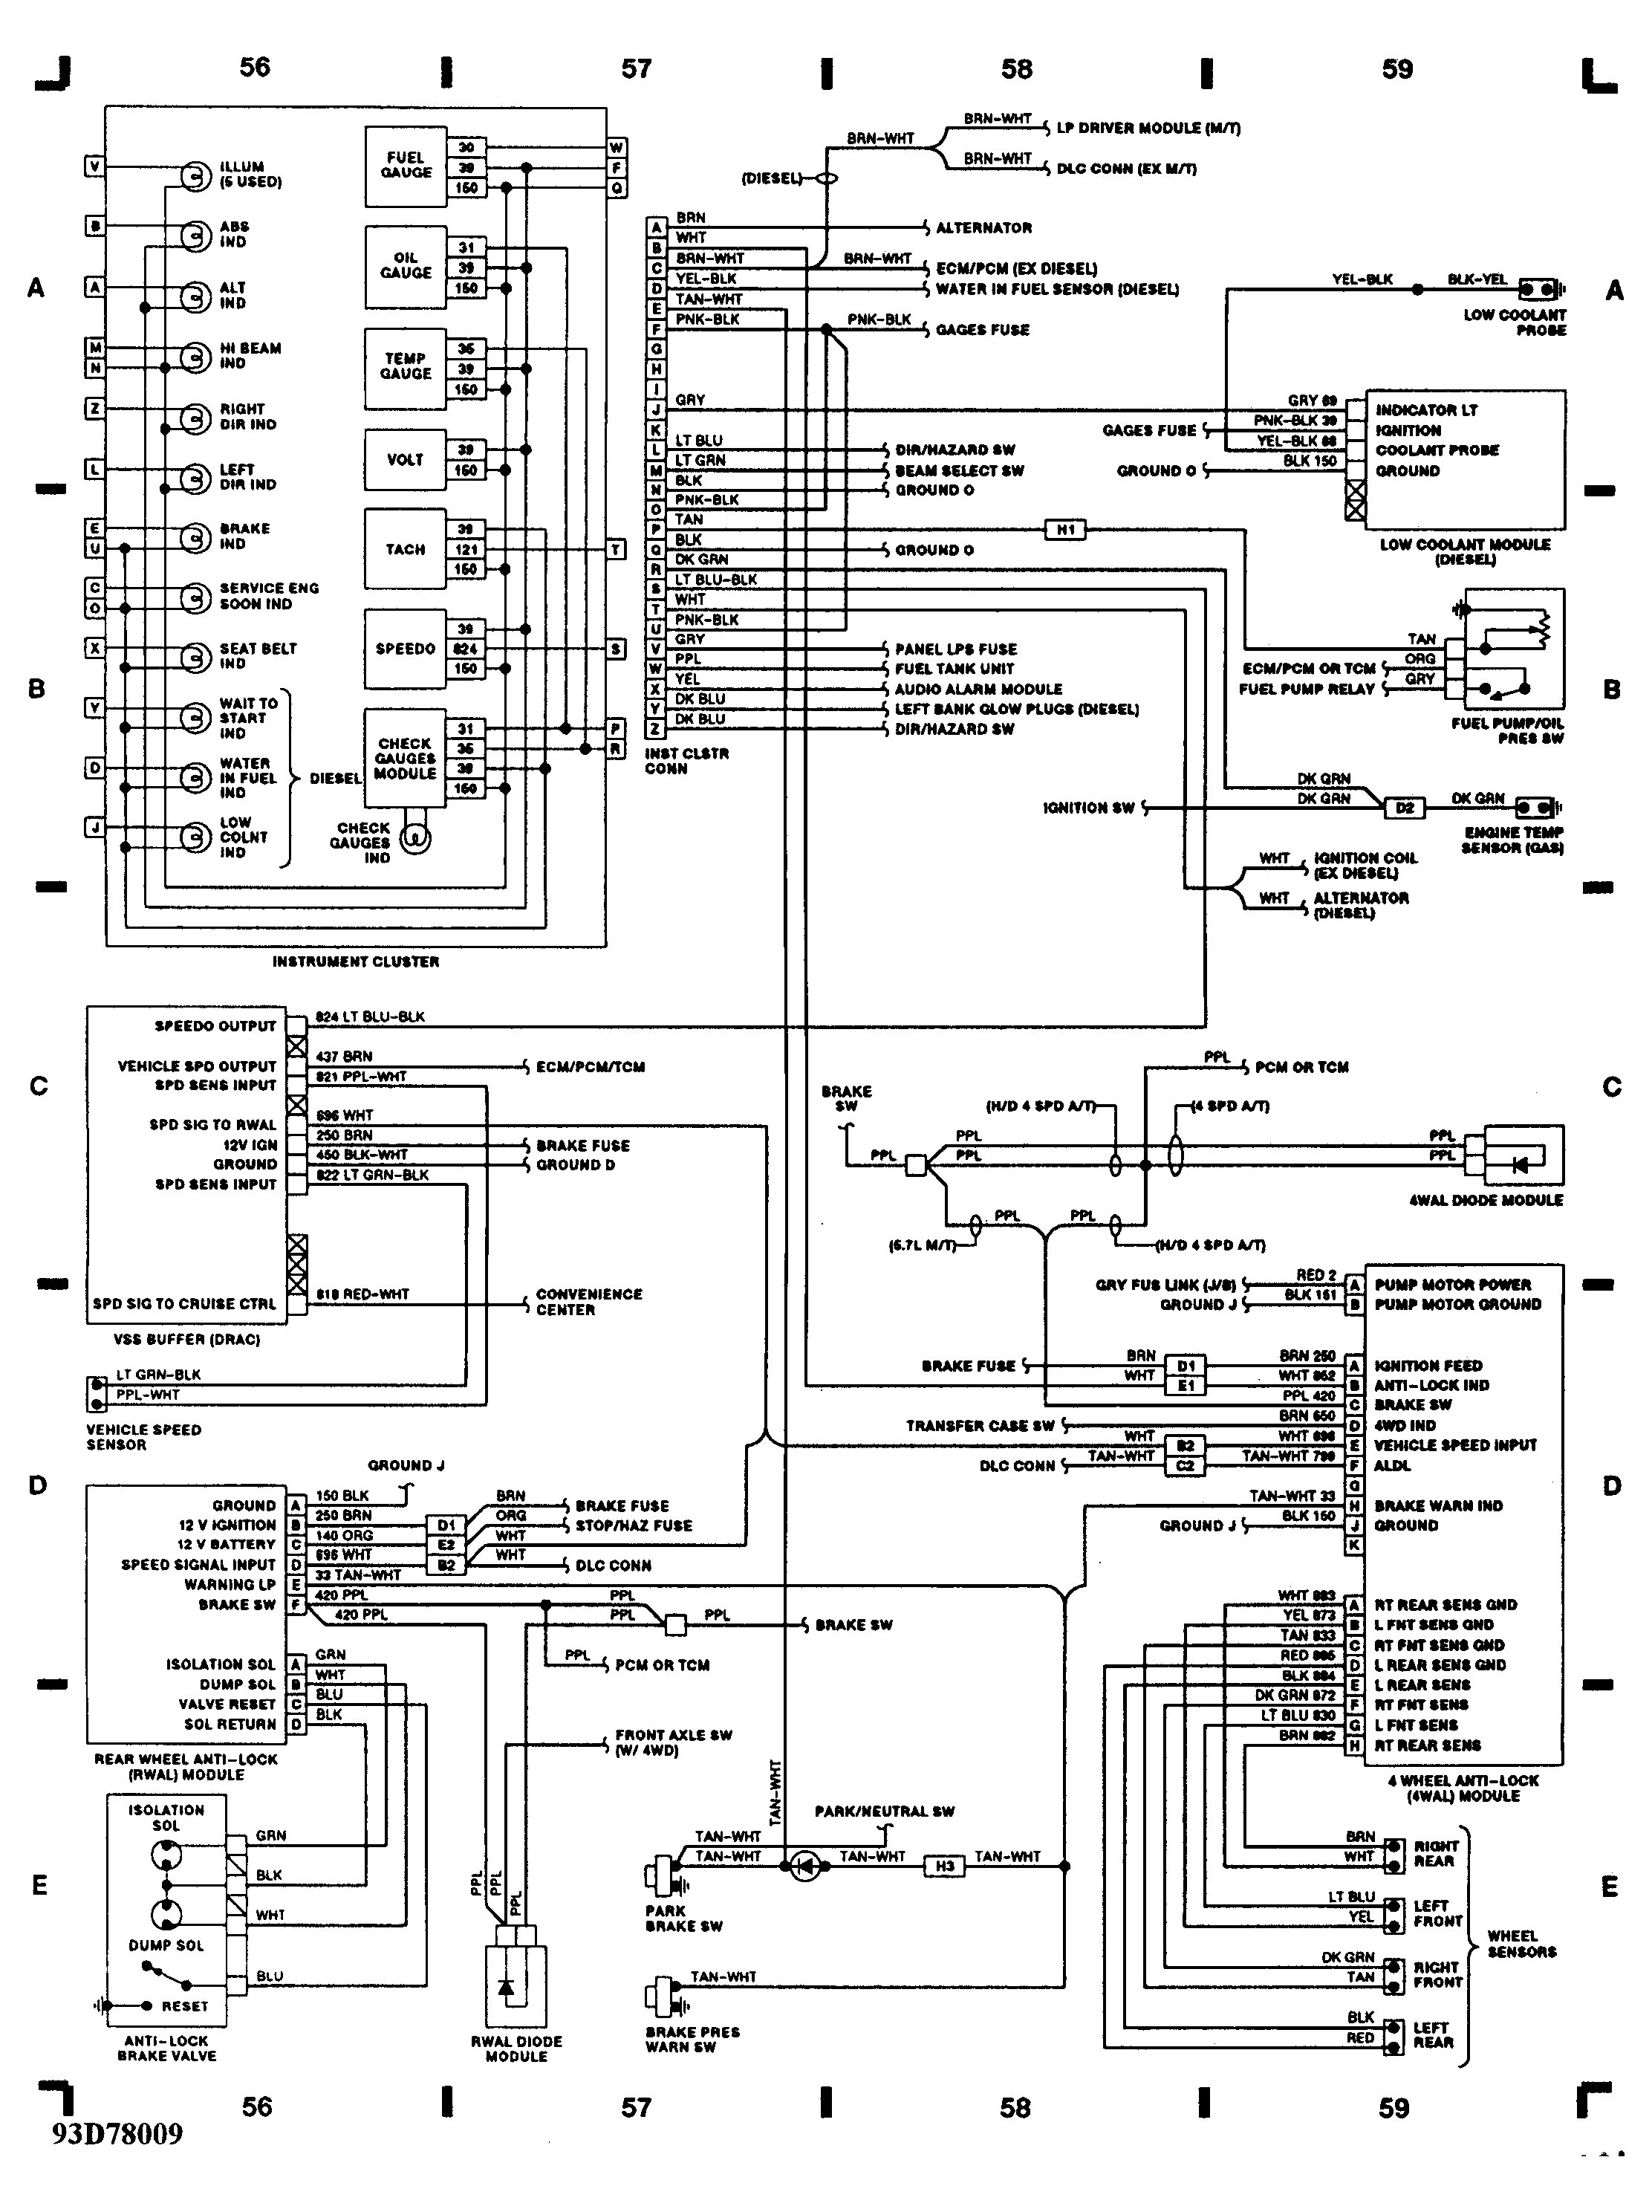 Home Stereo Wiring Diagram 5 7 Vortec Wiring Harness Diagram Download Of Home Stereo Wiring Diagram